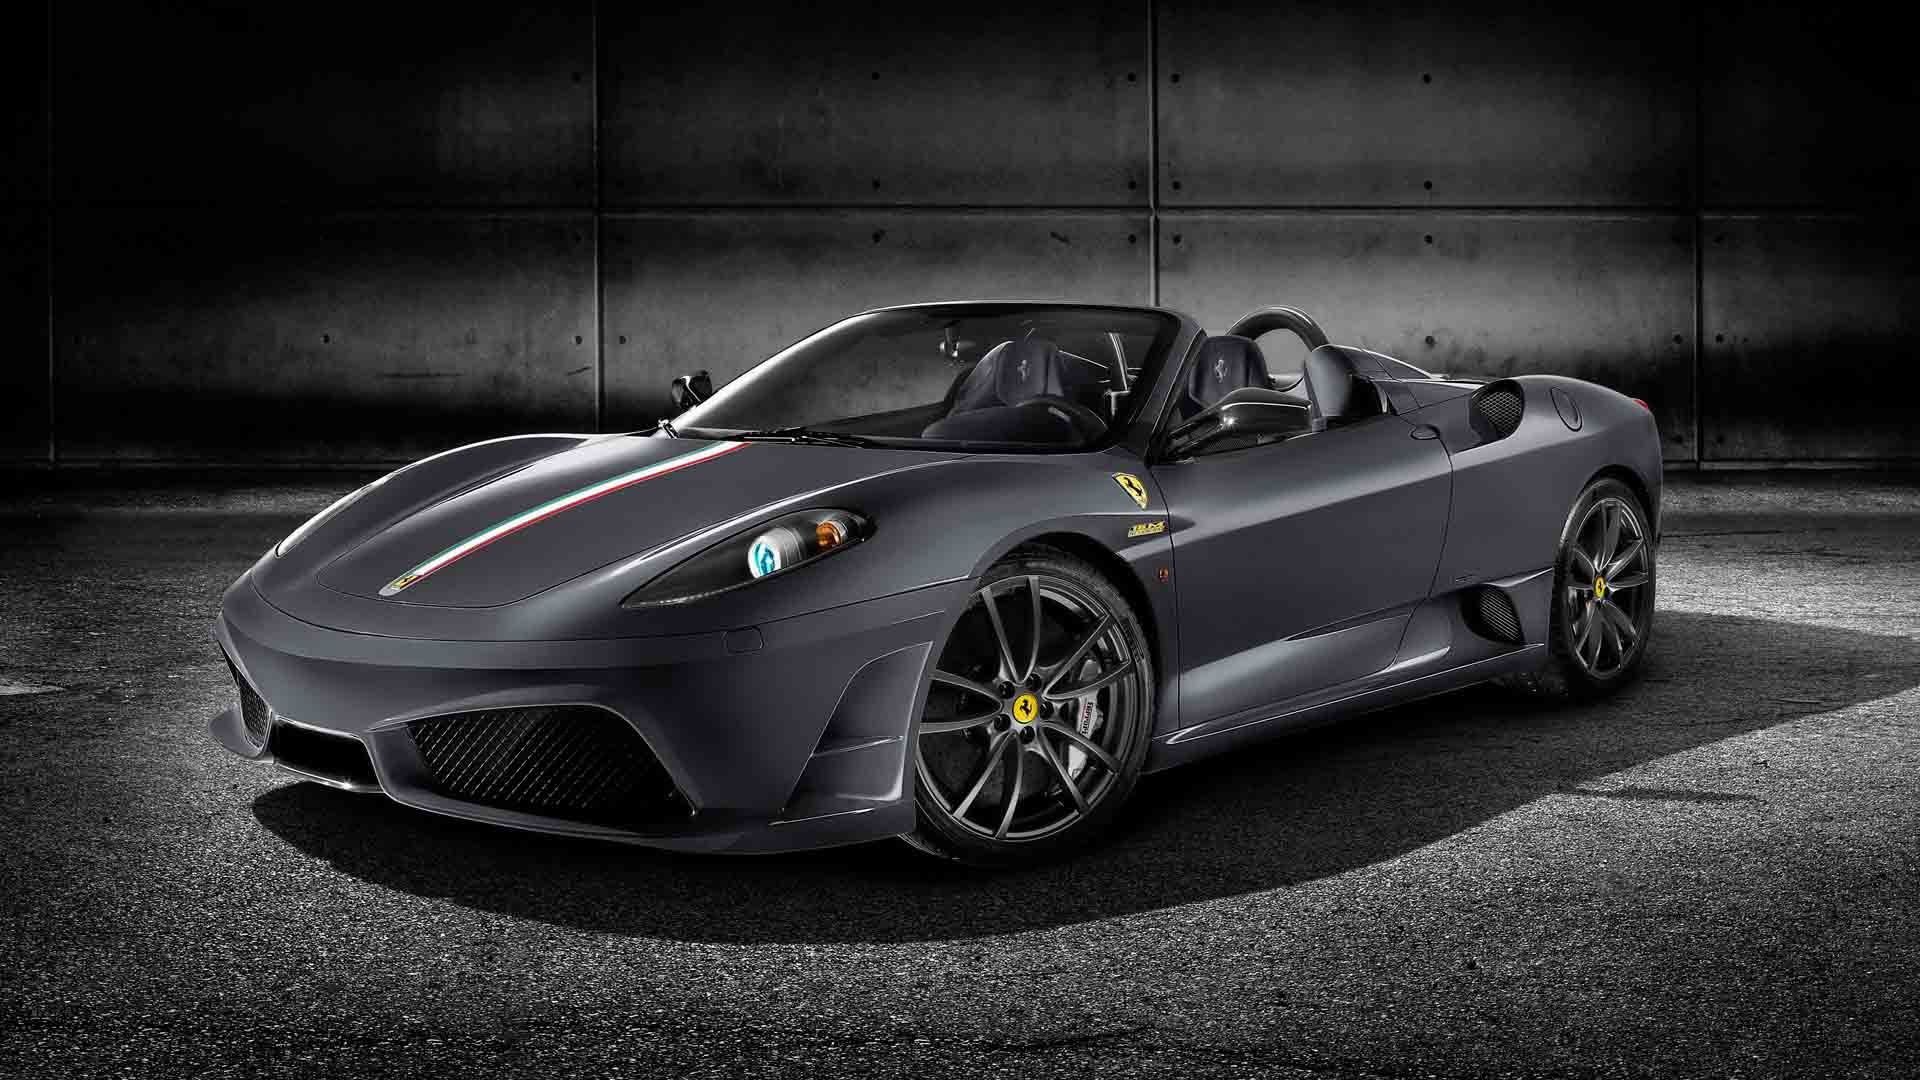 Exotic Car HD Desktop Backgrounds Wallpapers | HD Wallpapers Range